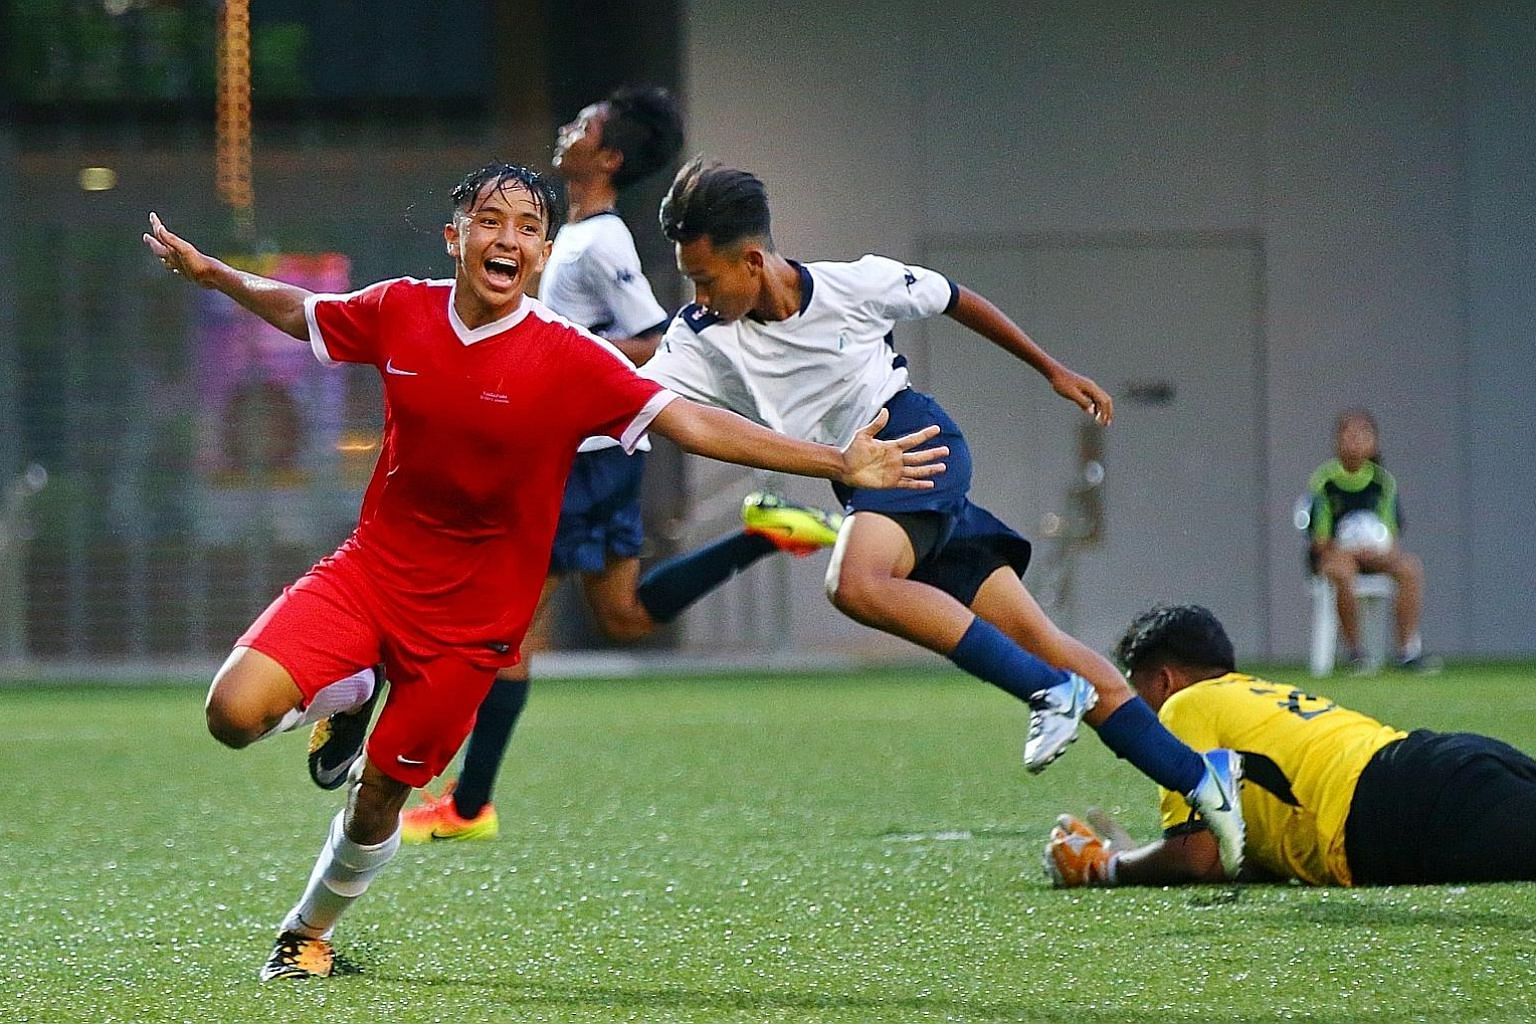 Sports School's Fathullah Rahmat wheeling away in joy after scoring their second goal in the final of the B Division Football Schools Premier League 1. They beat Meridian 2-0 at Our Tampines Hub to retain their title.